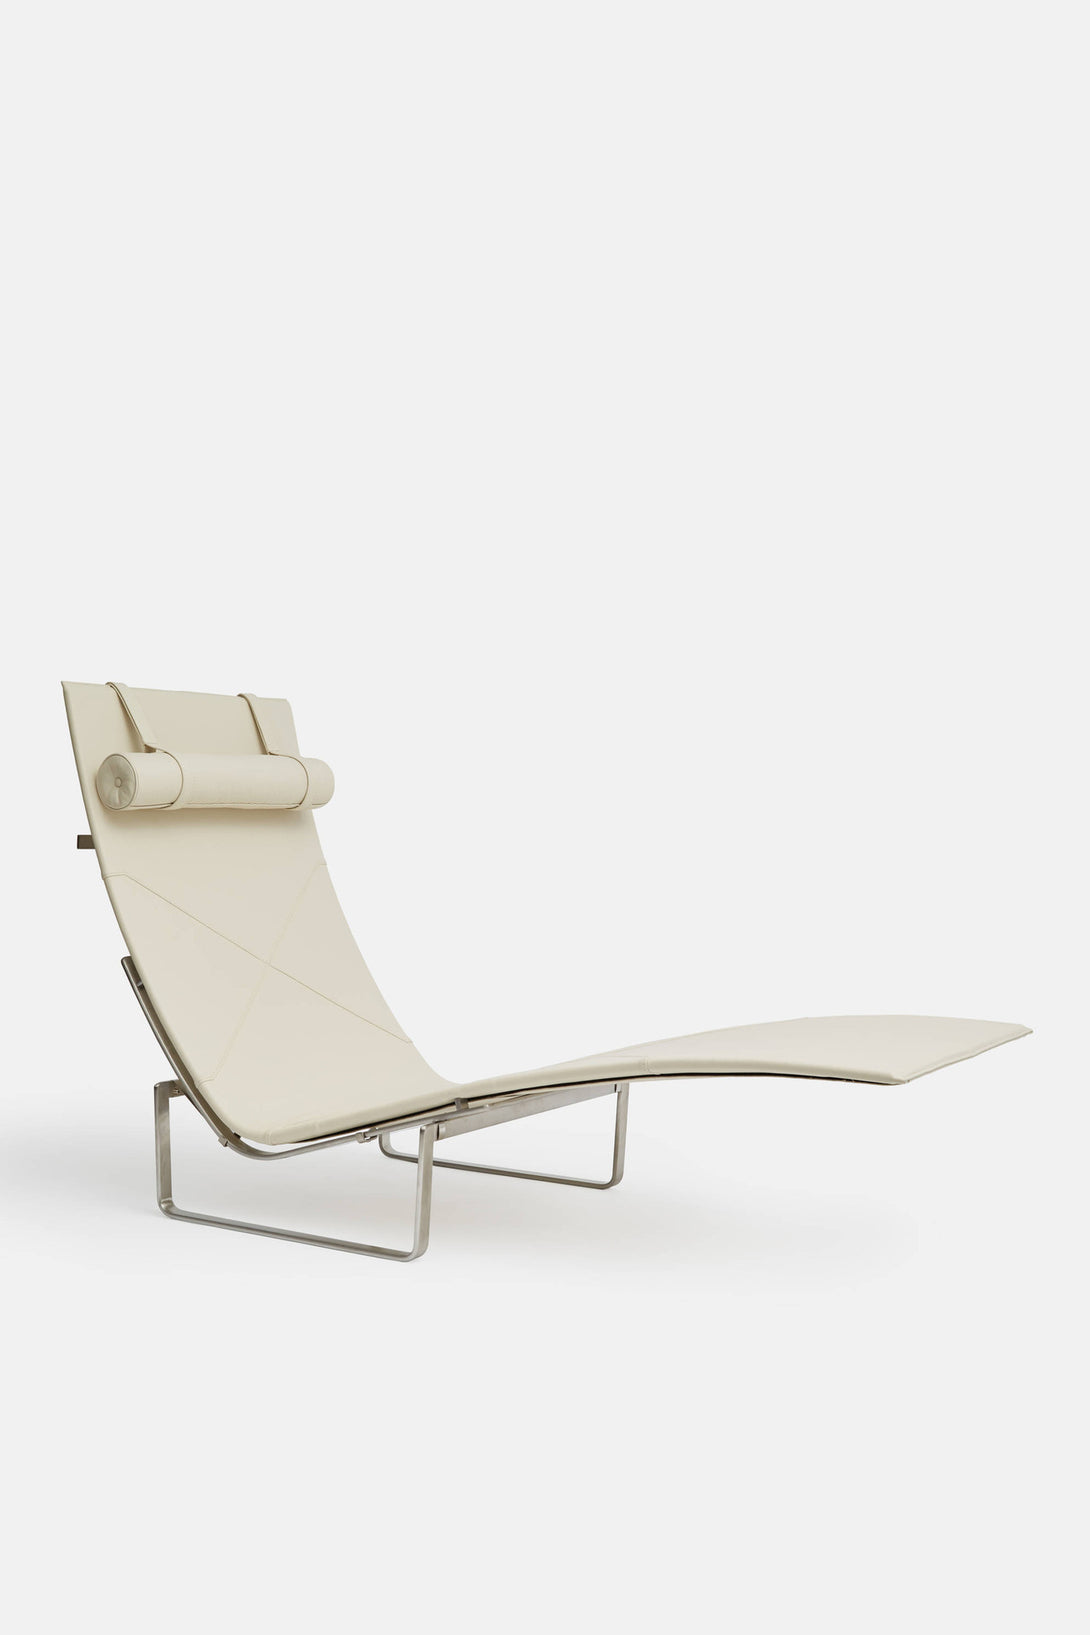 PK24 Chaise Lounge - White Leather : chaise lounge white - Sectionals, Sofas & Couches